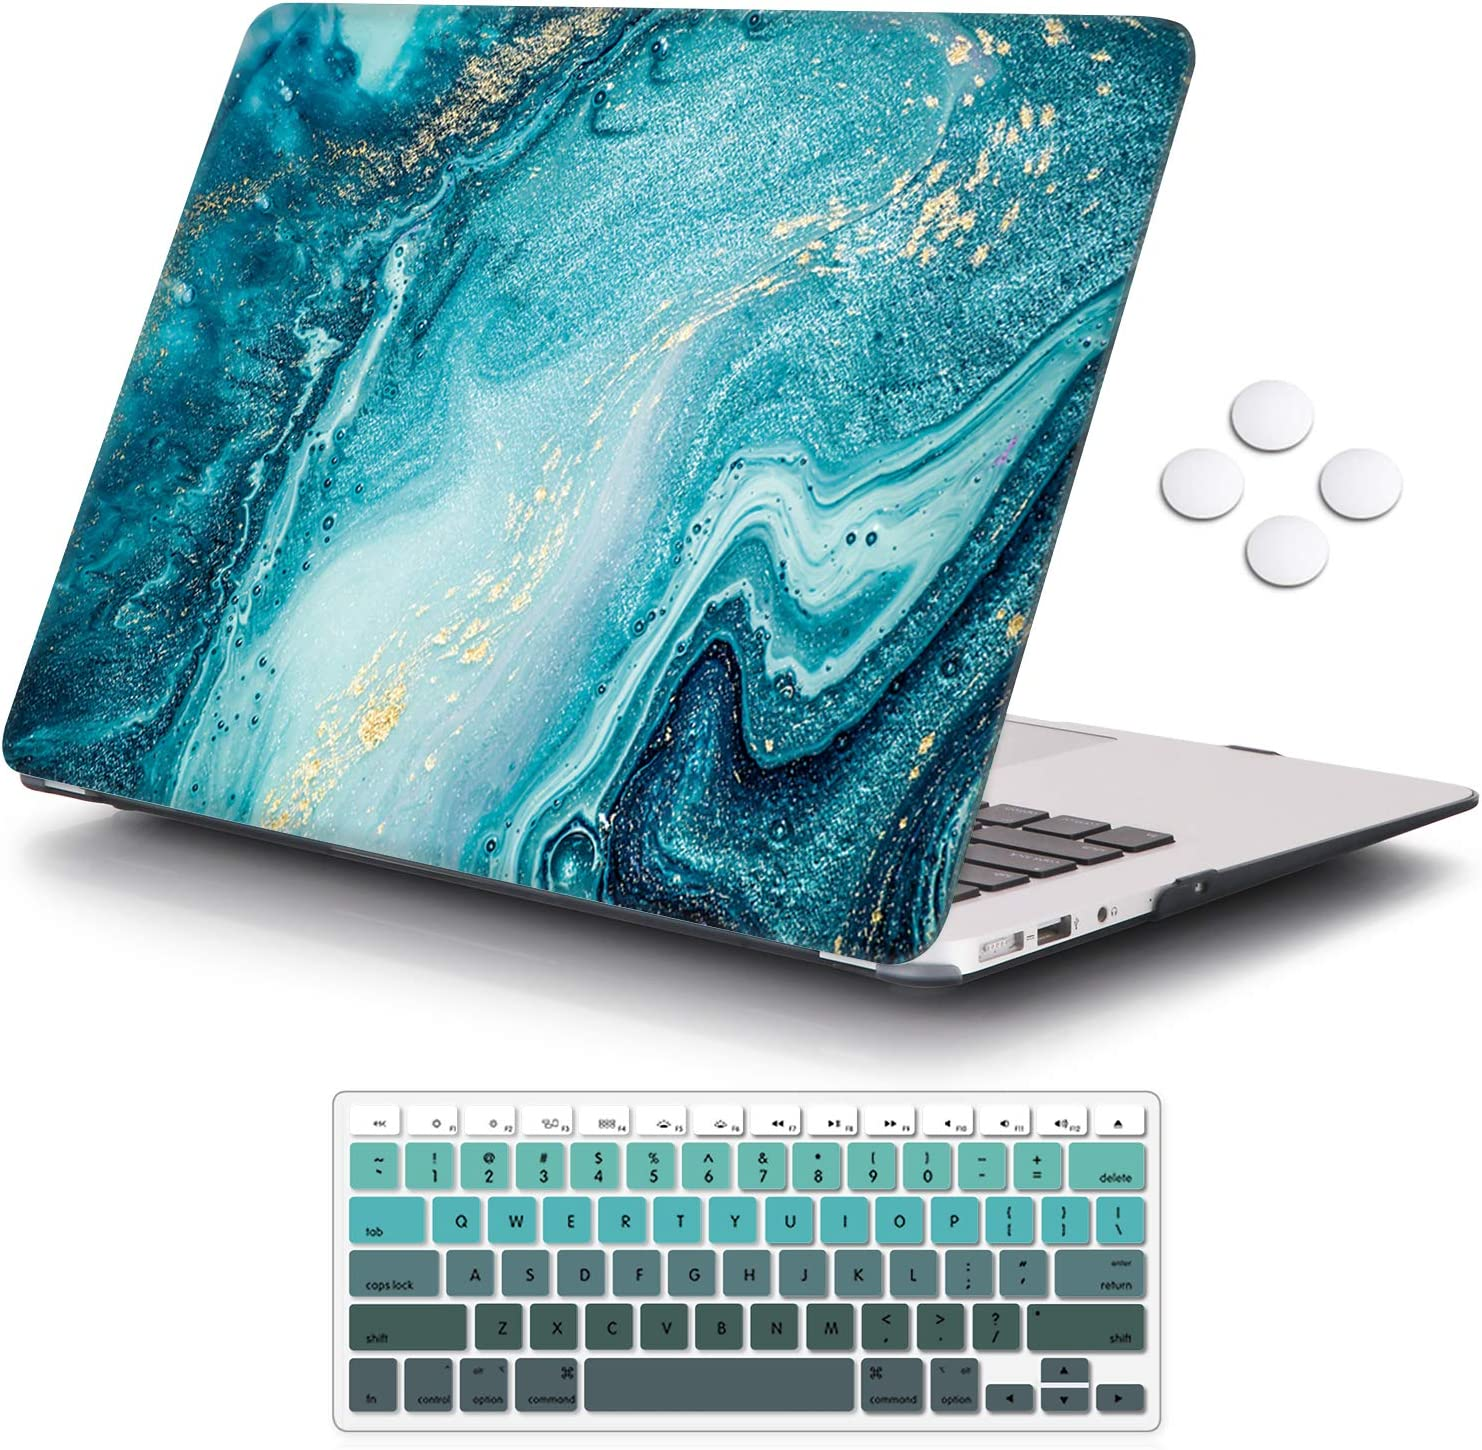 iCasso MacBook Air 13 inch Case (Release 2010-2017 Older Version), Plastic Pattern Hard Shell Protective Case & Keyboard Cover Only Compatible with MacBook Air 13 Inch Model A1369/A1466 - River Sand